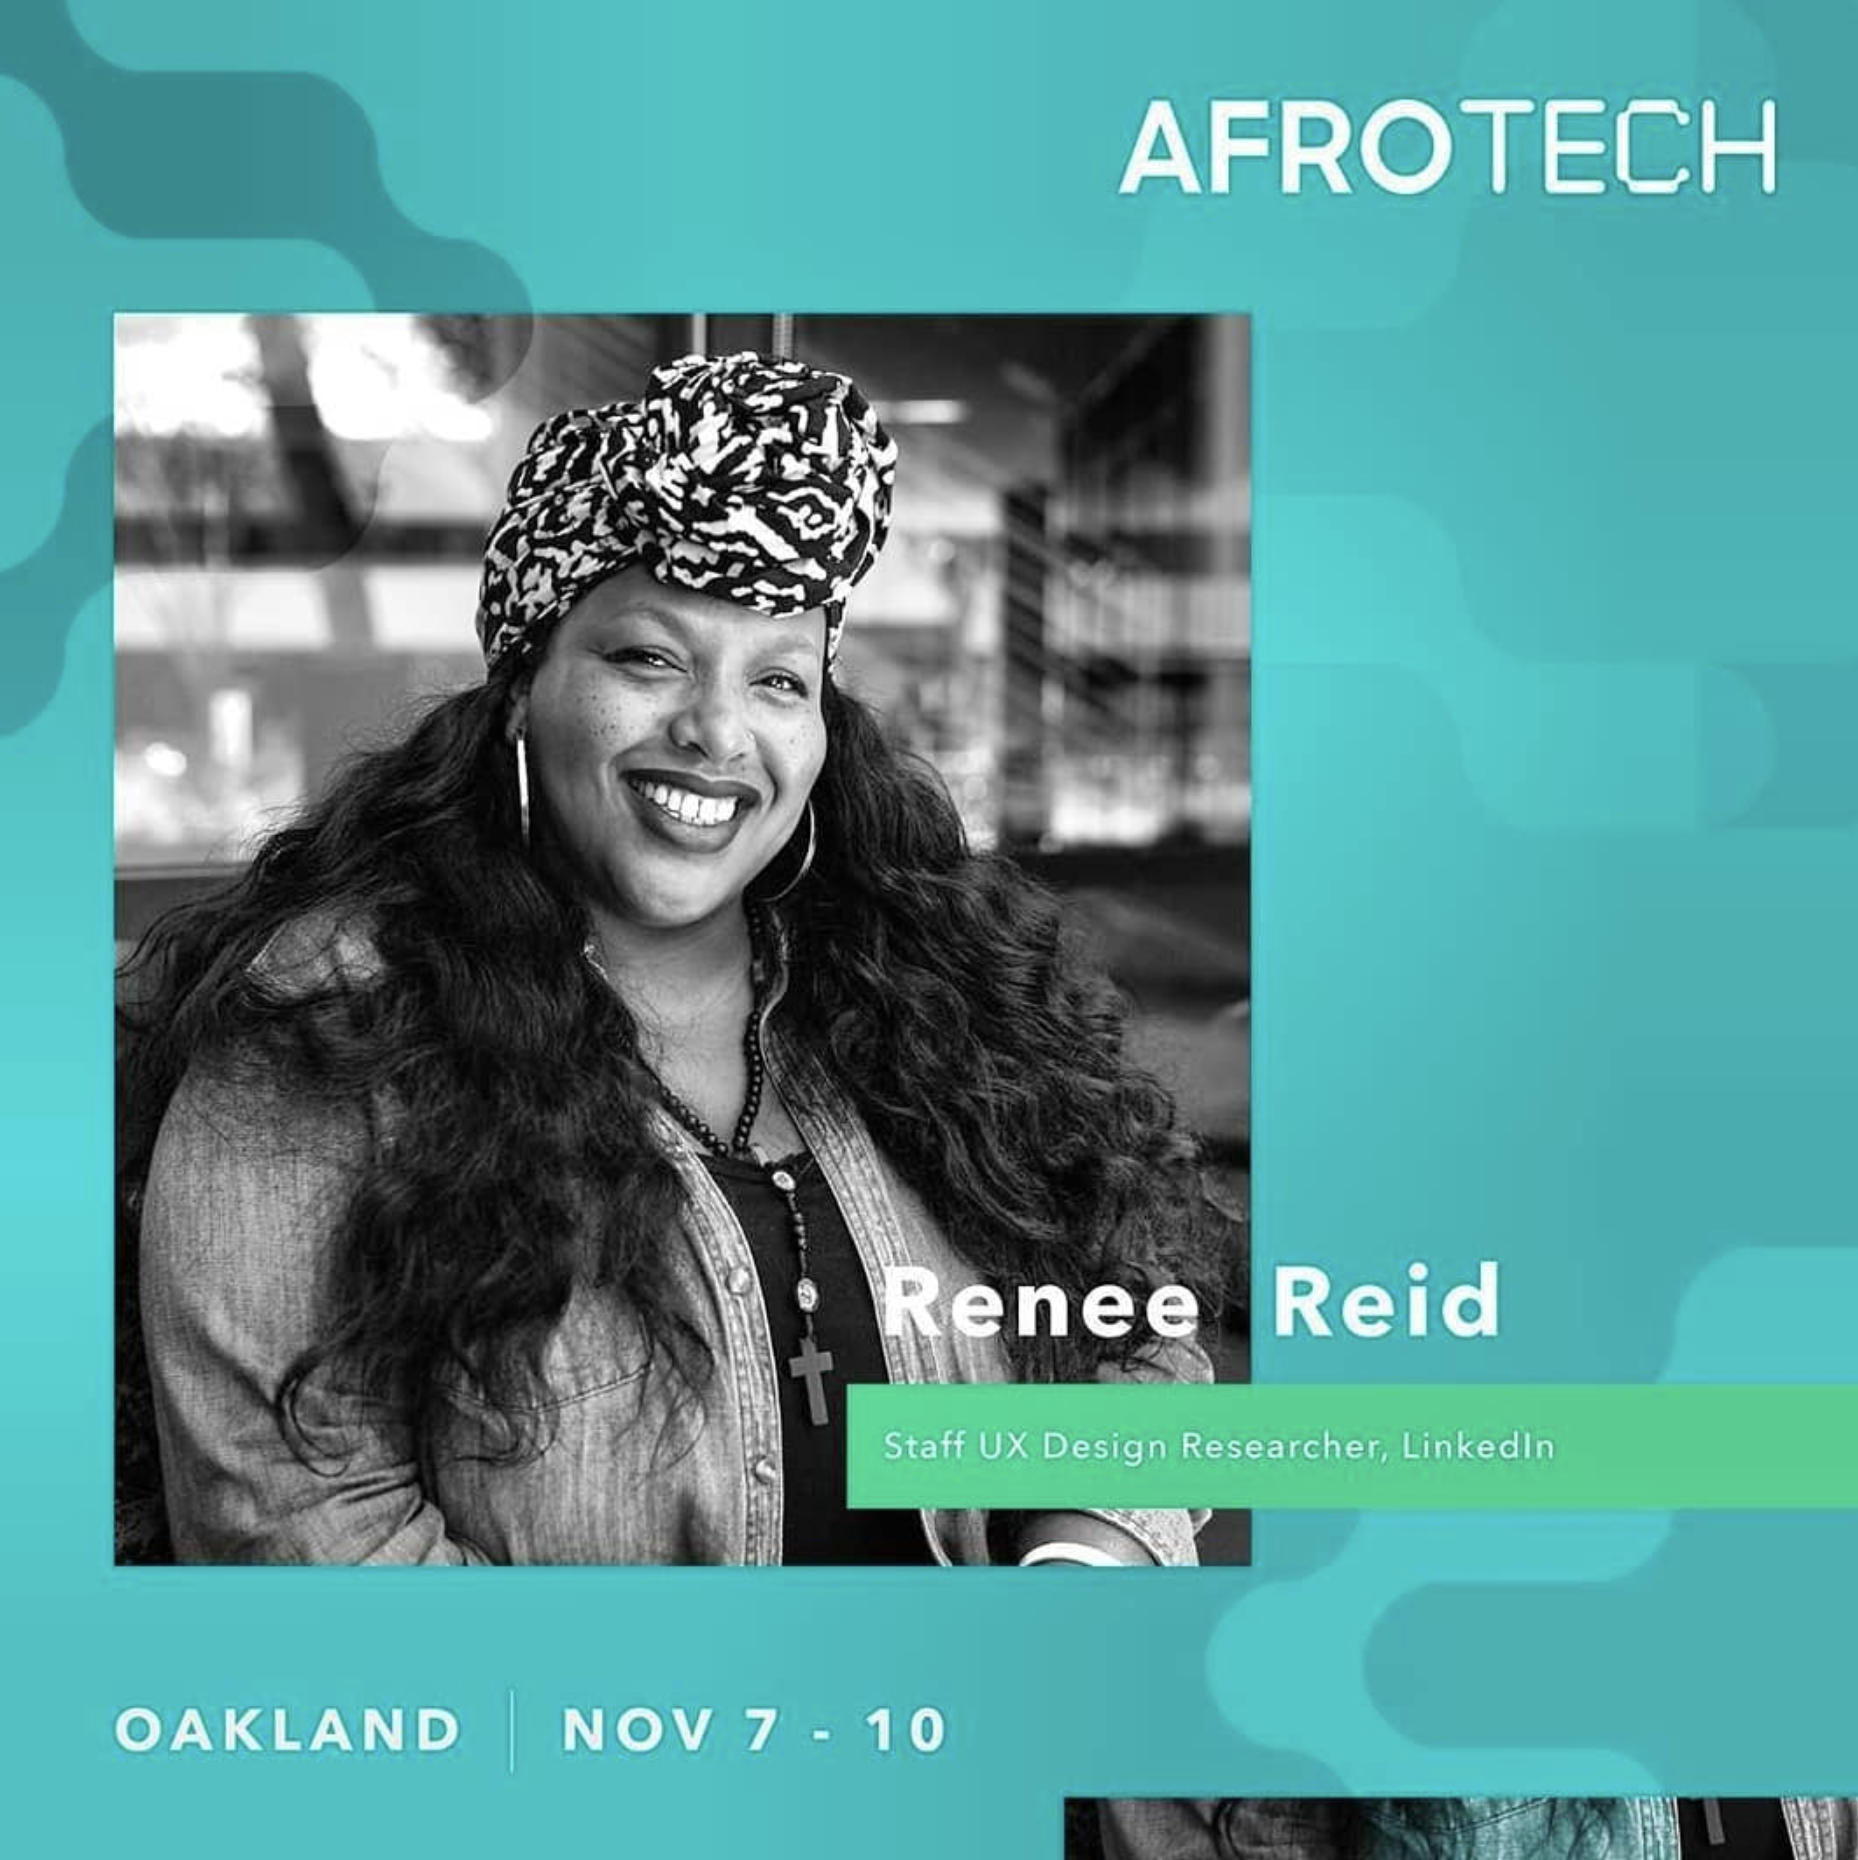 AFROTECH - All roads lead to Oakland Nov 7-10th for the biggest and best tech conference for the culture.Register & Get Your Tickets HERE